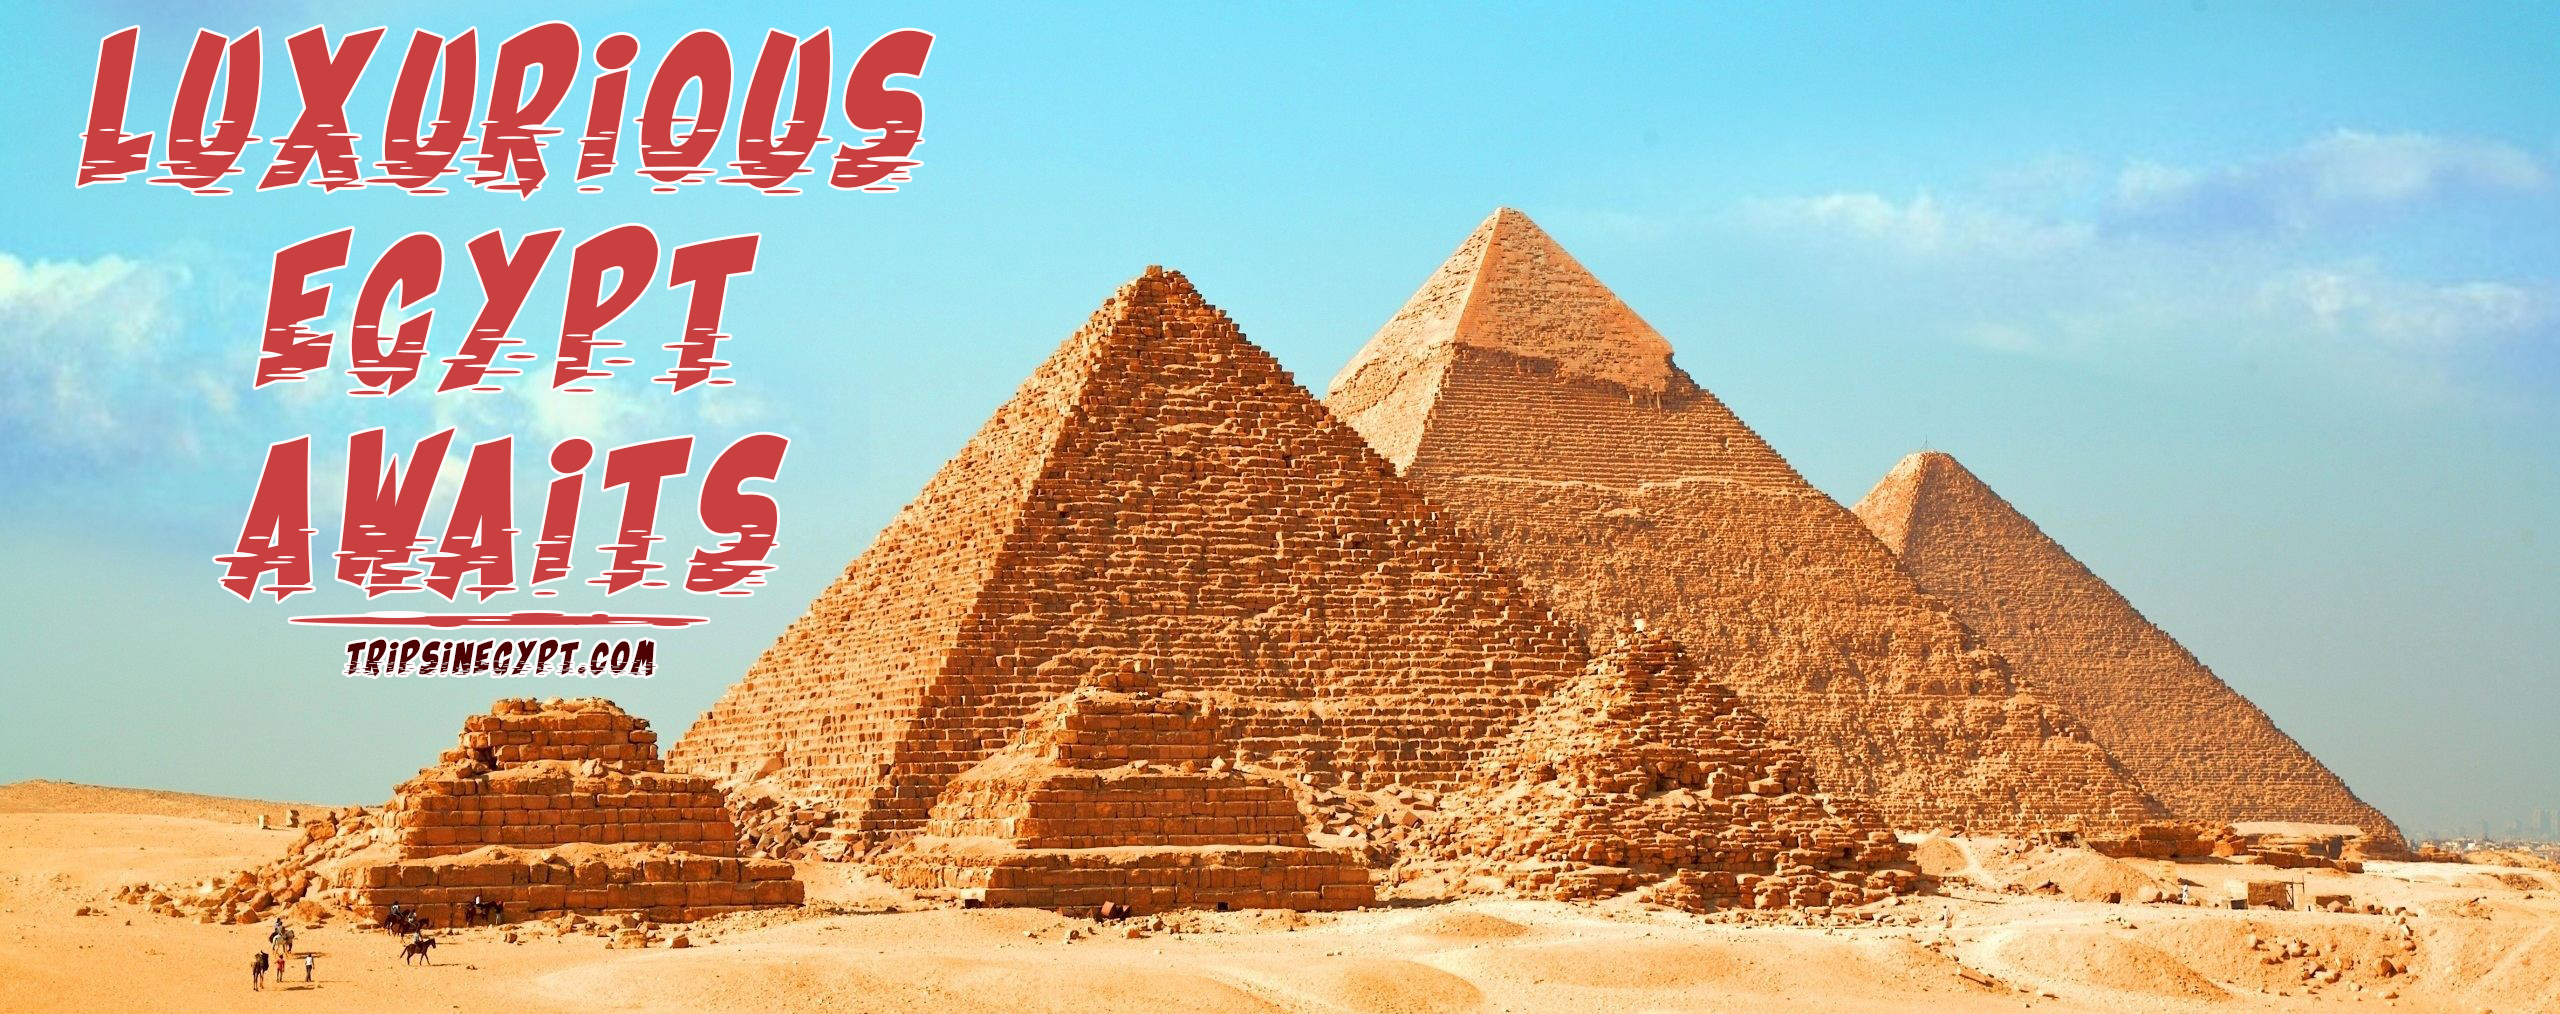 Luxury Egypt Tours Packages - Trips in Egypt